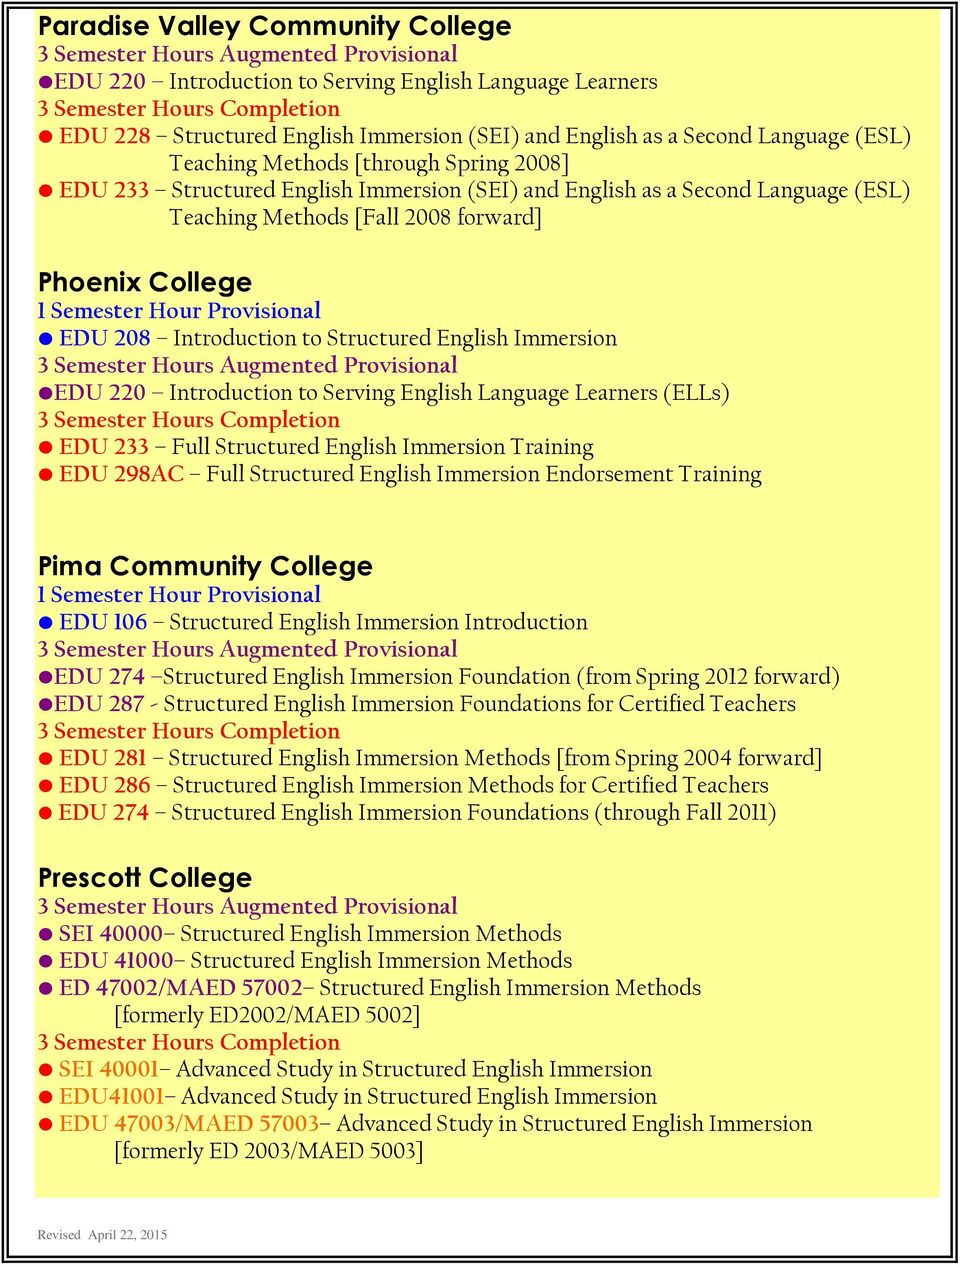 Immersion EDU 220 Introduction to Serving English Language Learners (ELLs) EDU 233 Full Structured English Immersion Training EDU 298AC Full Structured English Immersion Endorsement Training Pima